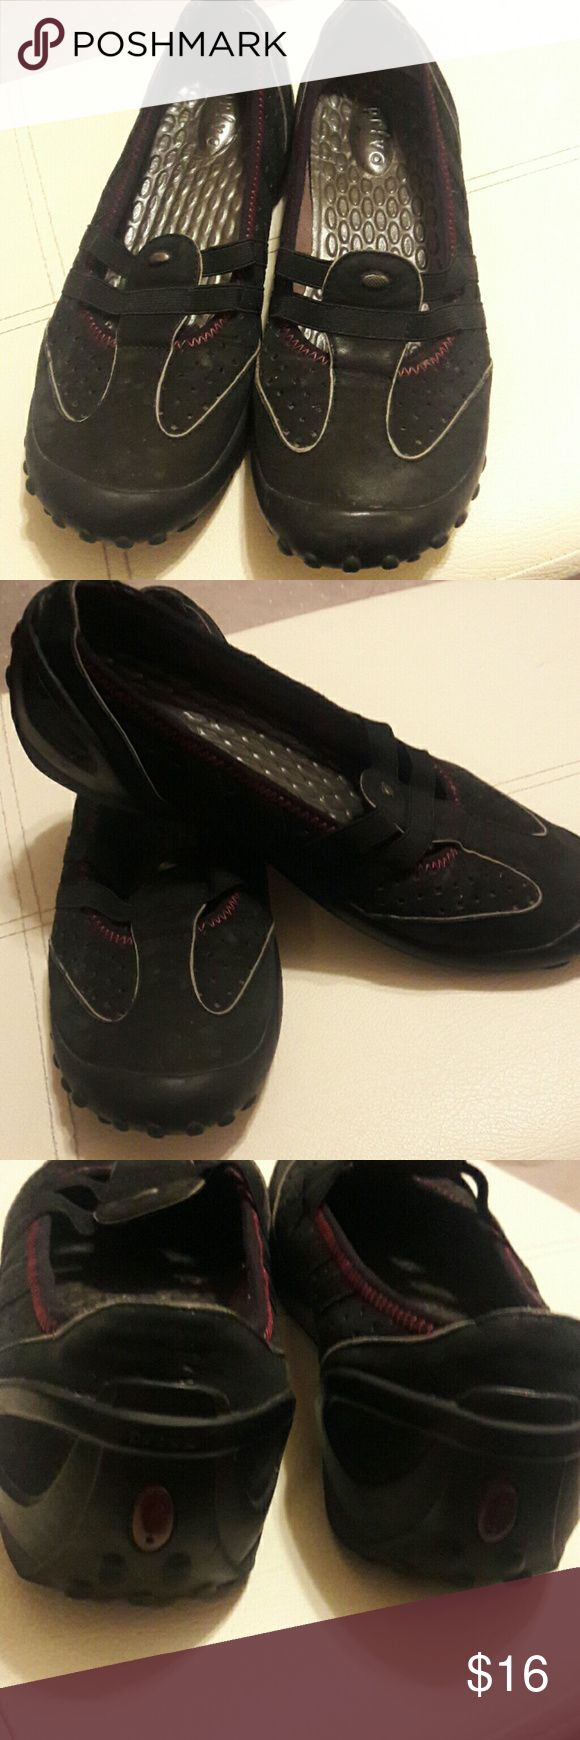 Privo by Clark's shoes - black suede uppers Very comfy walking shoes.  Good condition. 9 medium Clarks Shoes Sneakers